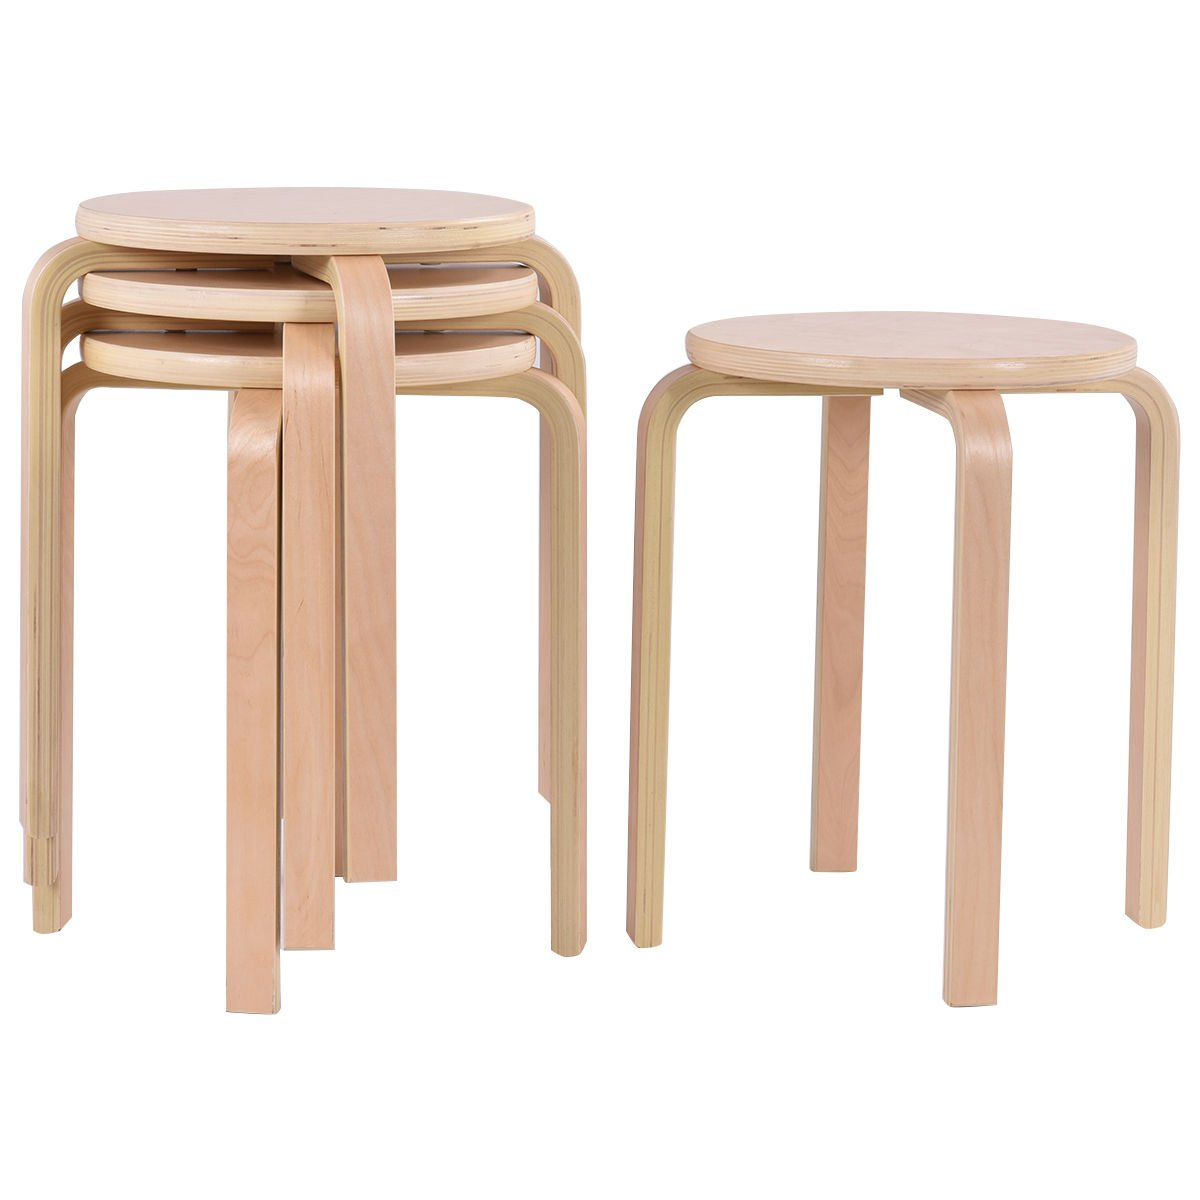 et of 4 17-inch Bentwood Stools Stacking Home Room Furniture Decor New